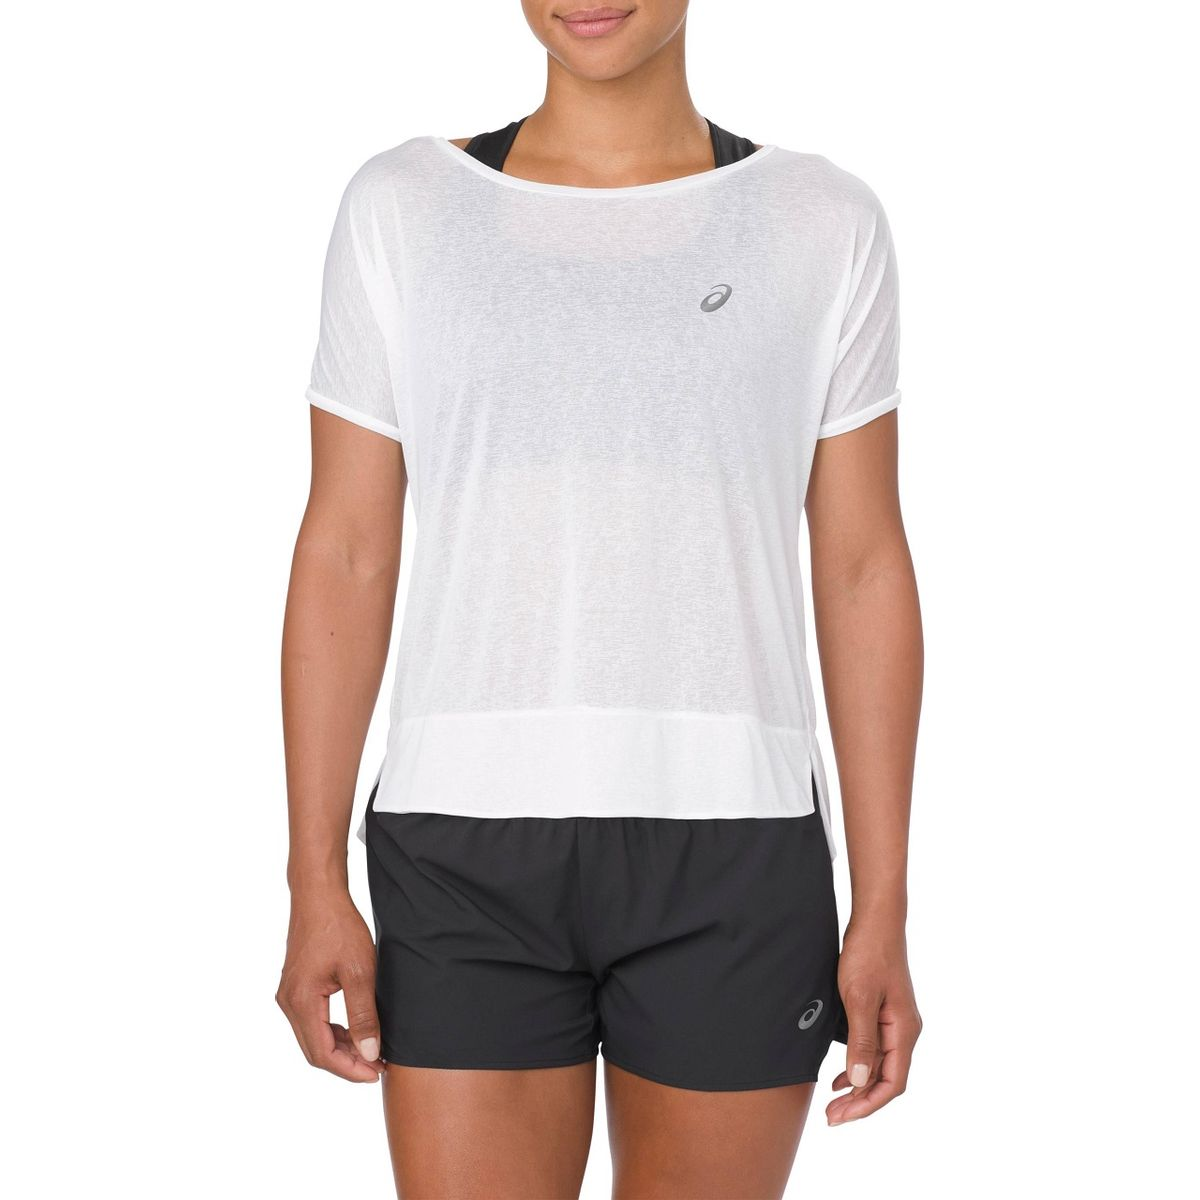 Camiseta-Asics-Crop-Top-de-Mangas-Curtas